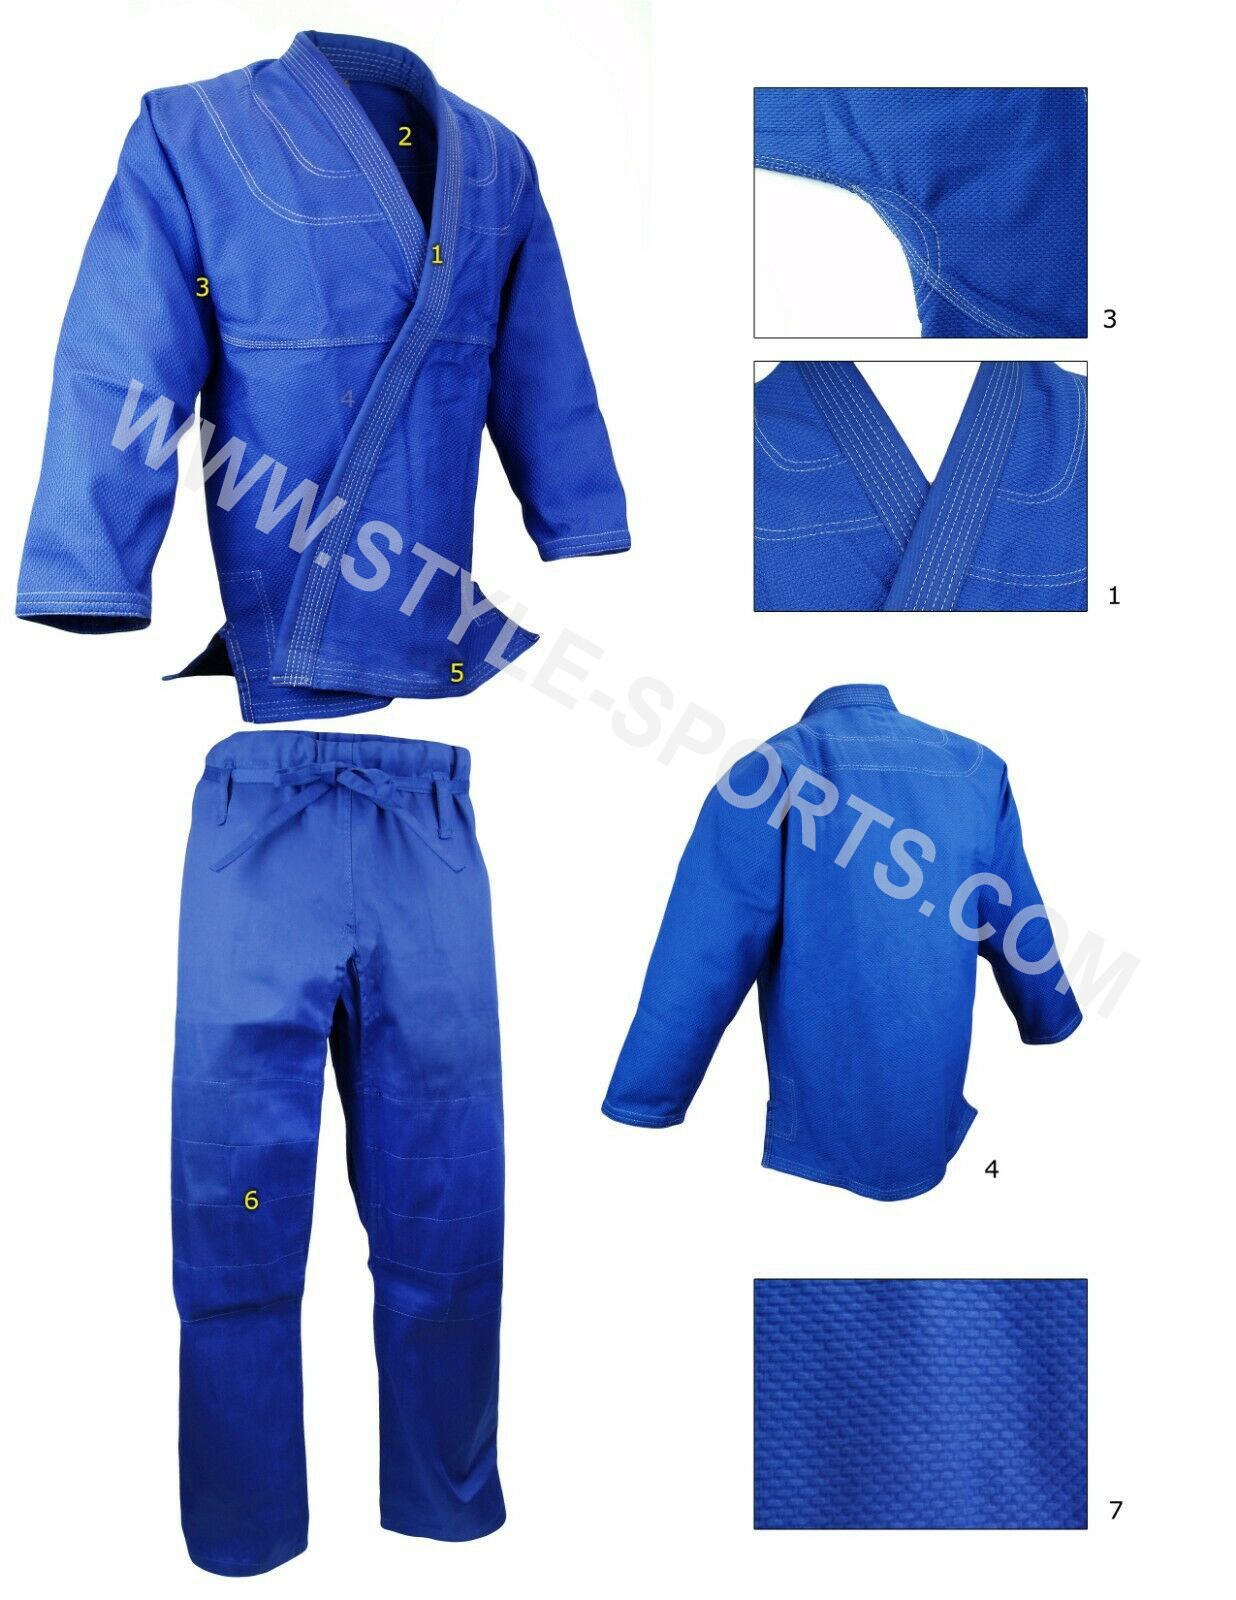 2020 Unisex Jiu Jitsu Gi Uniforms Martial Arts Uniform Bjj Gi Suits Lightweight Jiu Jitsu Uniform